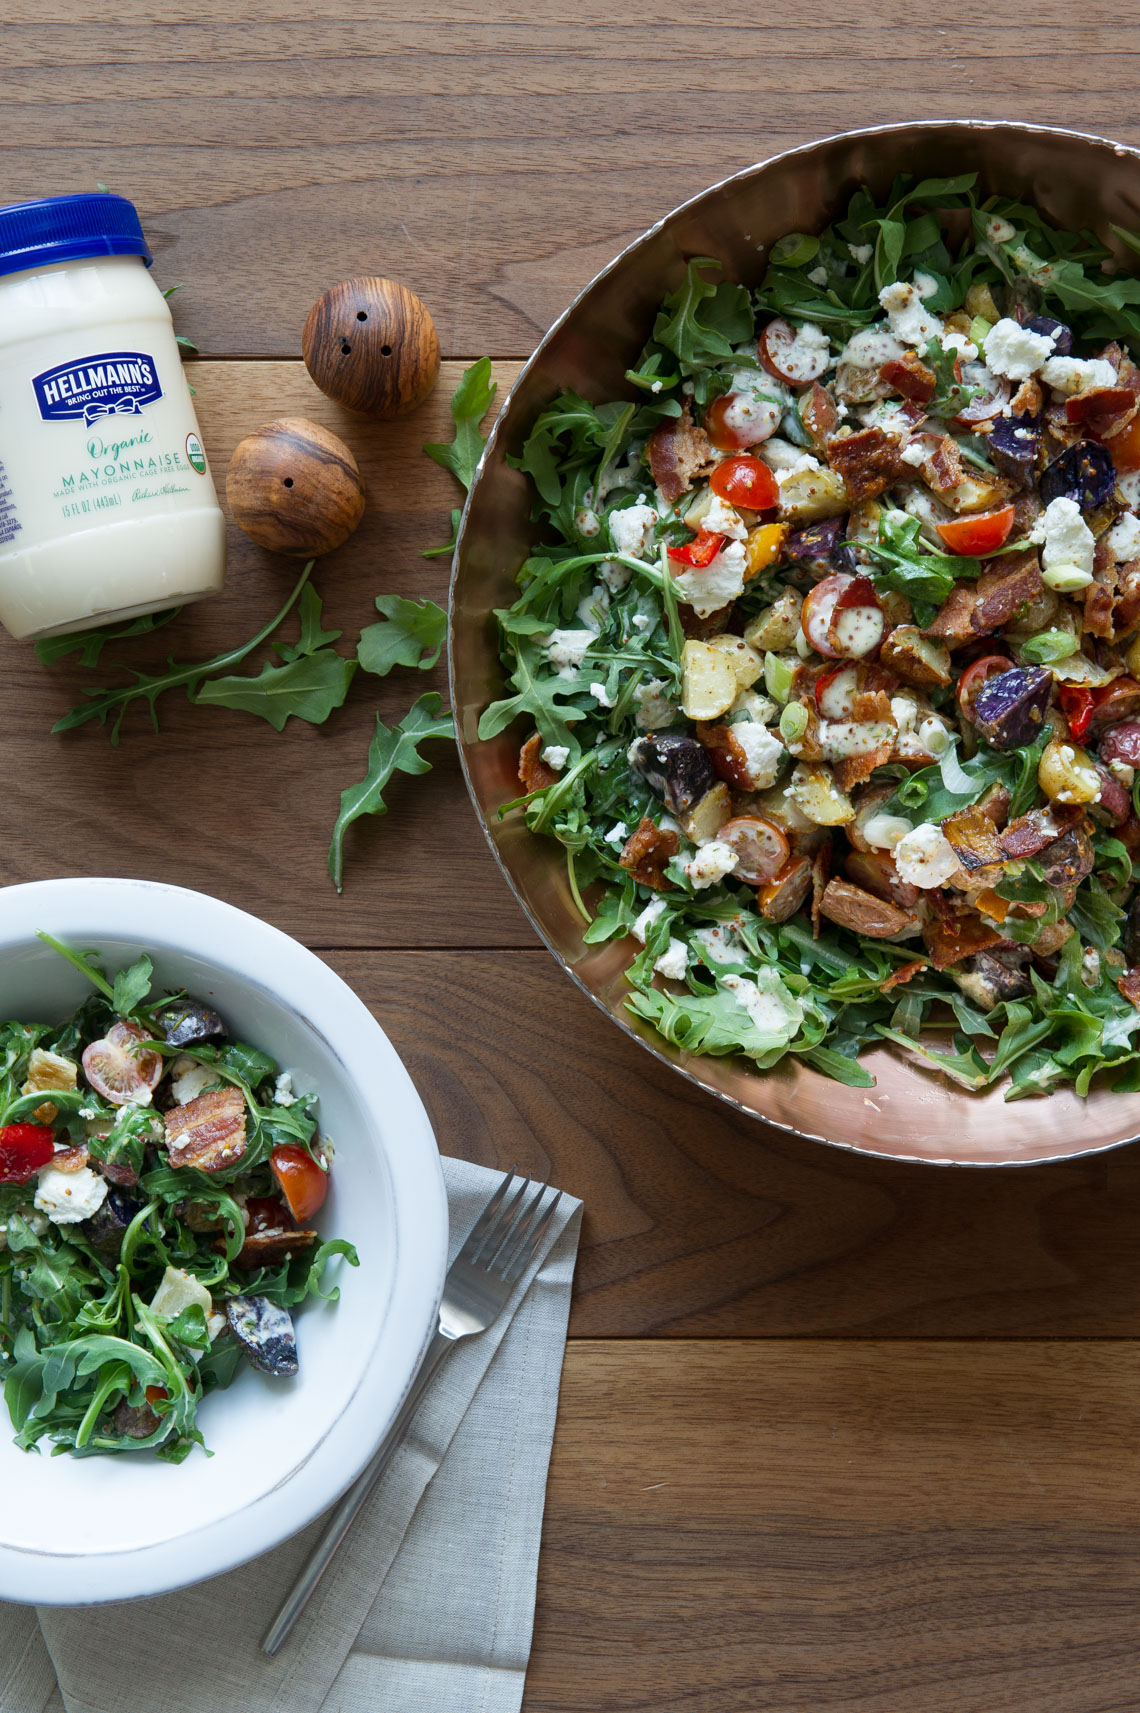 NYC Commercial Food Photographer - Hellmanns